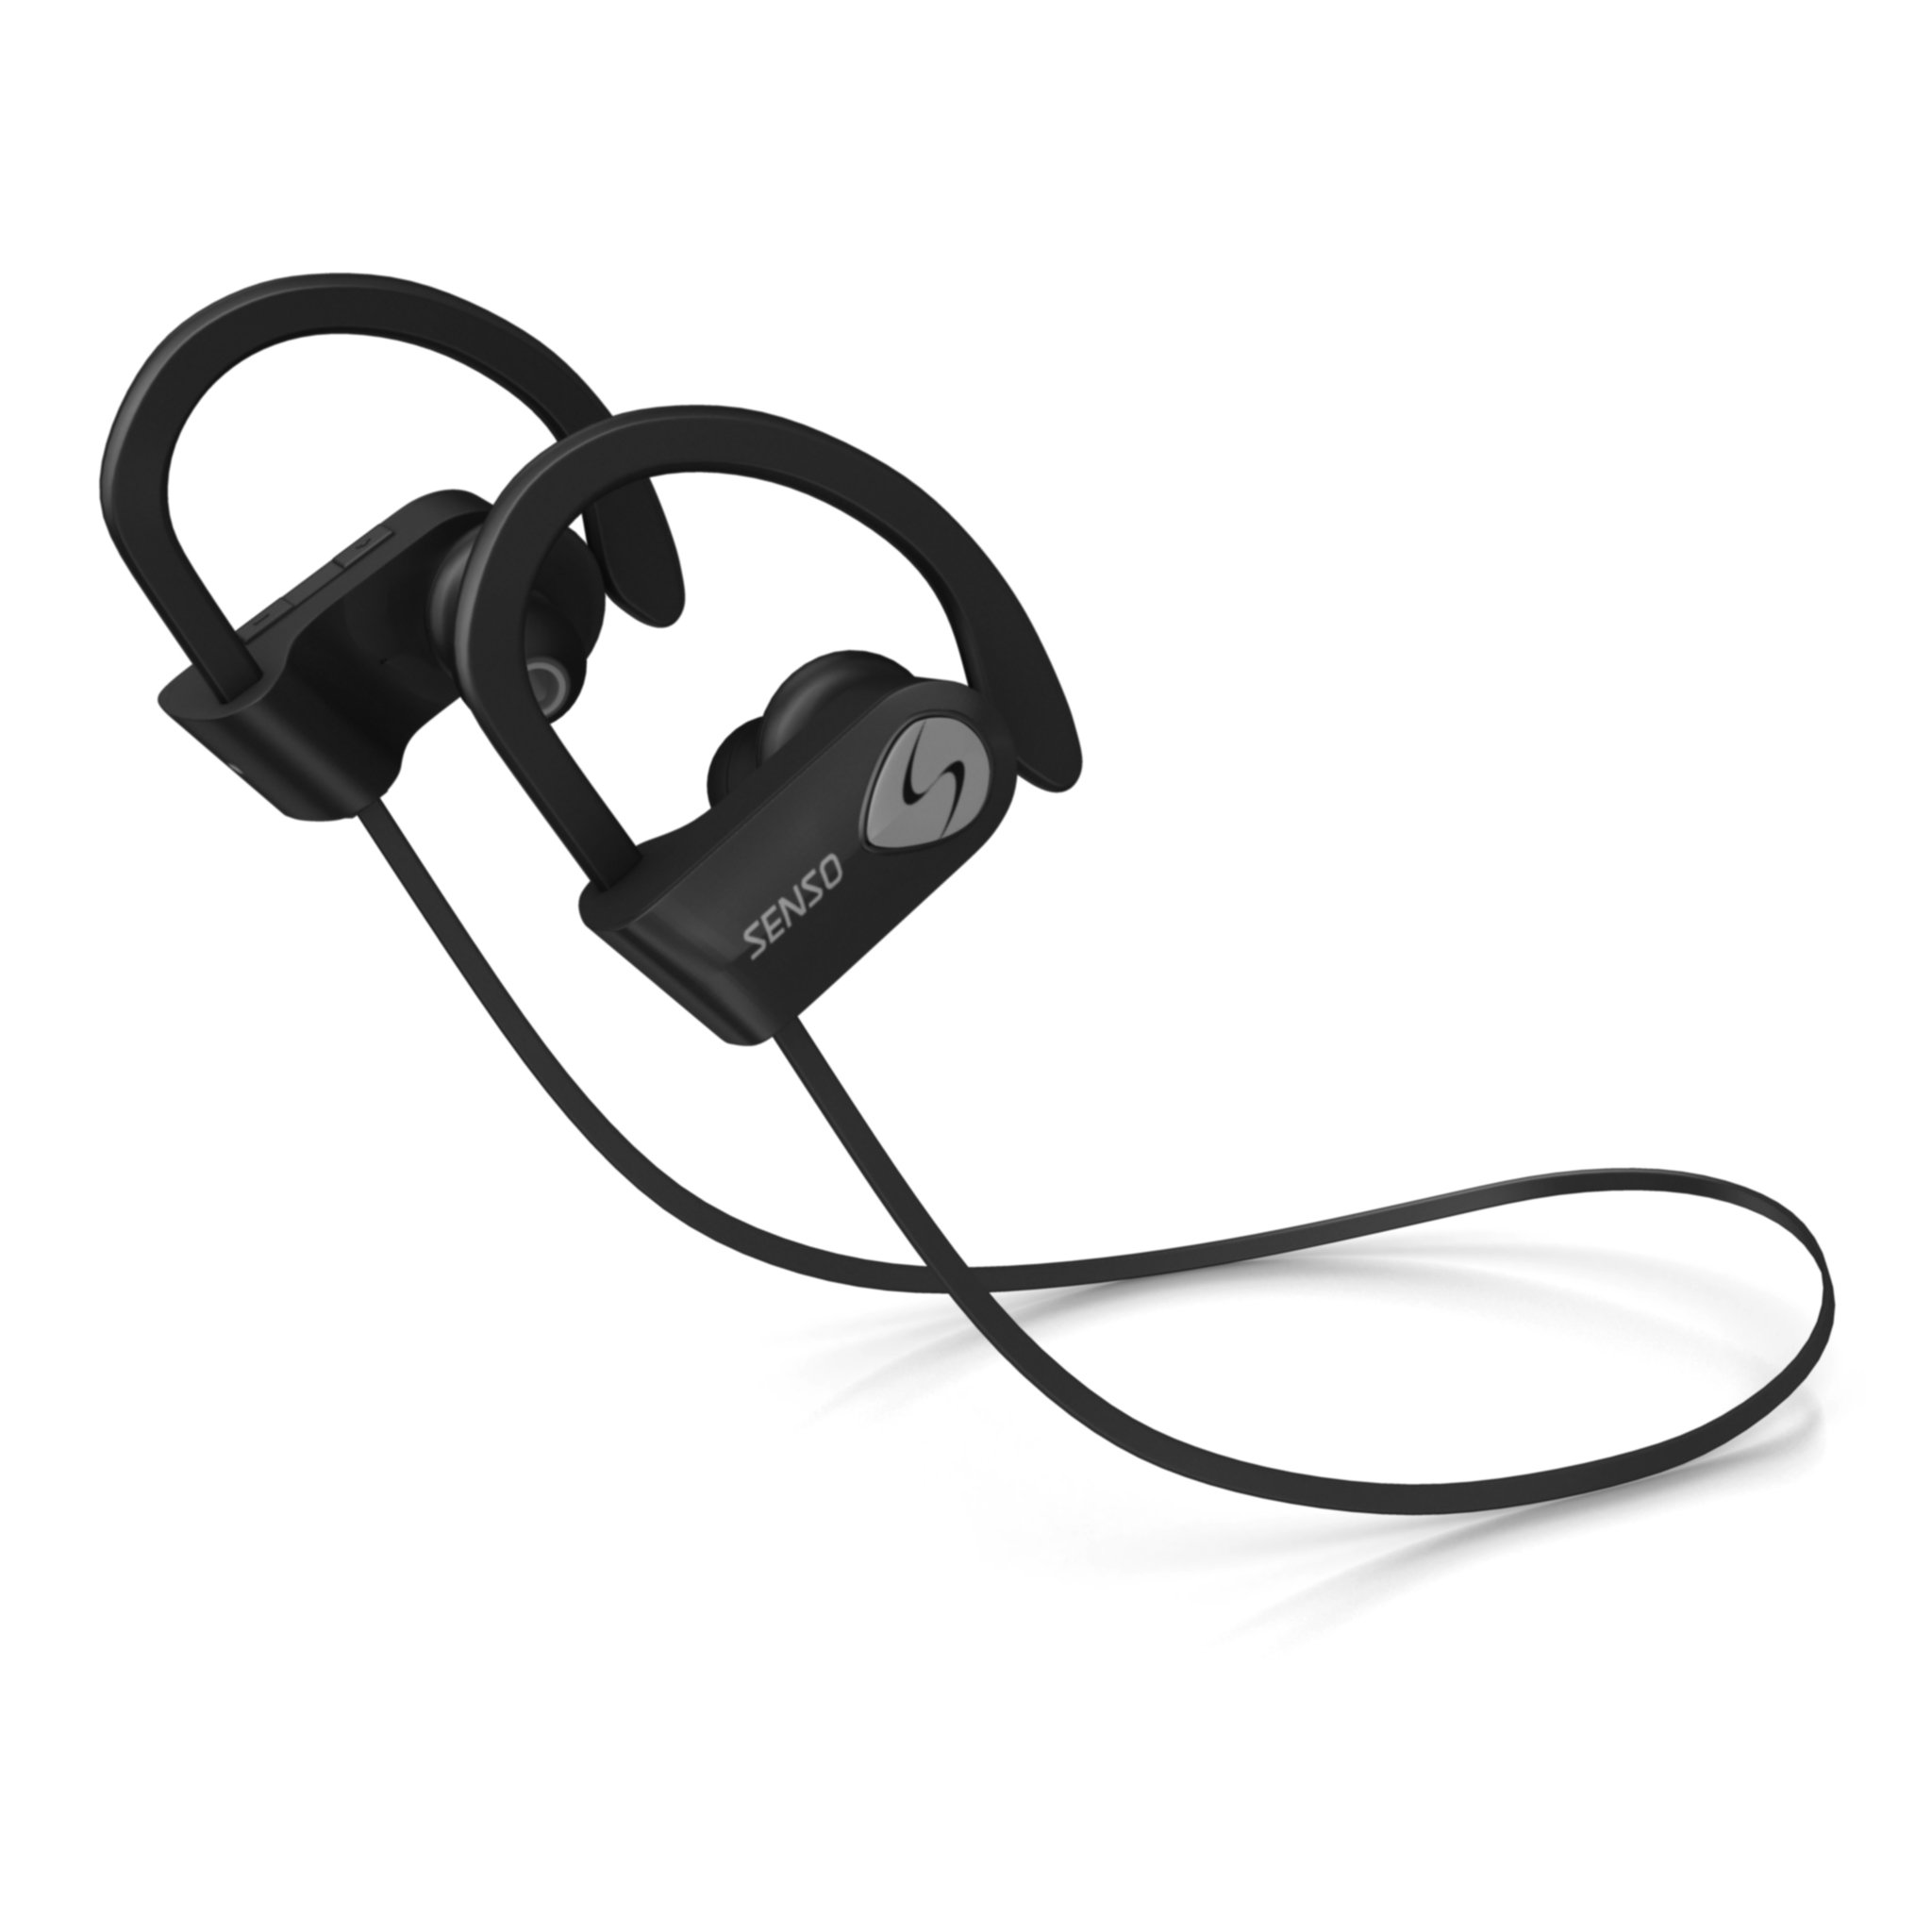 SENSO Bluetooth Headphones, Best Wireless Sports Earphones w/Mic IPX7 Waterproof HD Stereo Sweatproof Earbuds for Gym Running Workout 8 Hour Battery Noise Cancelling Headsets (Grey) by Senso (Image #5)